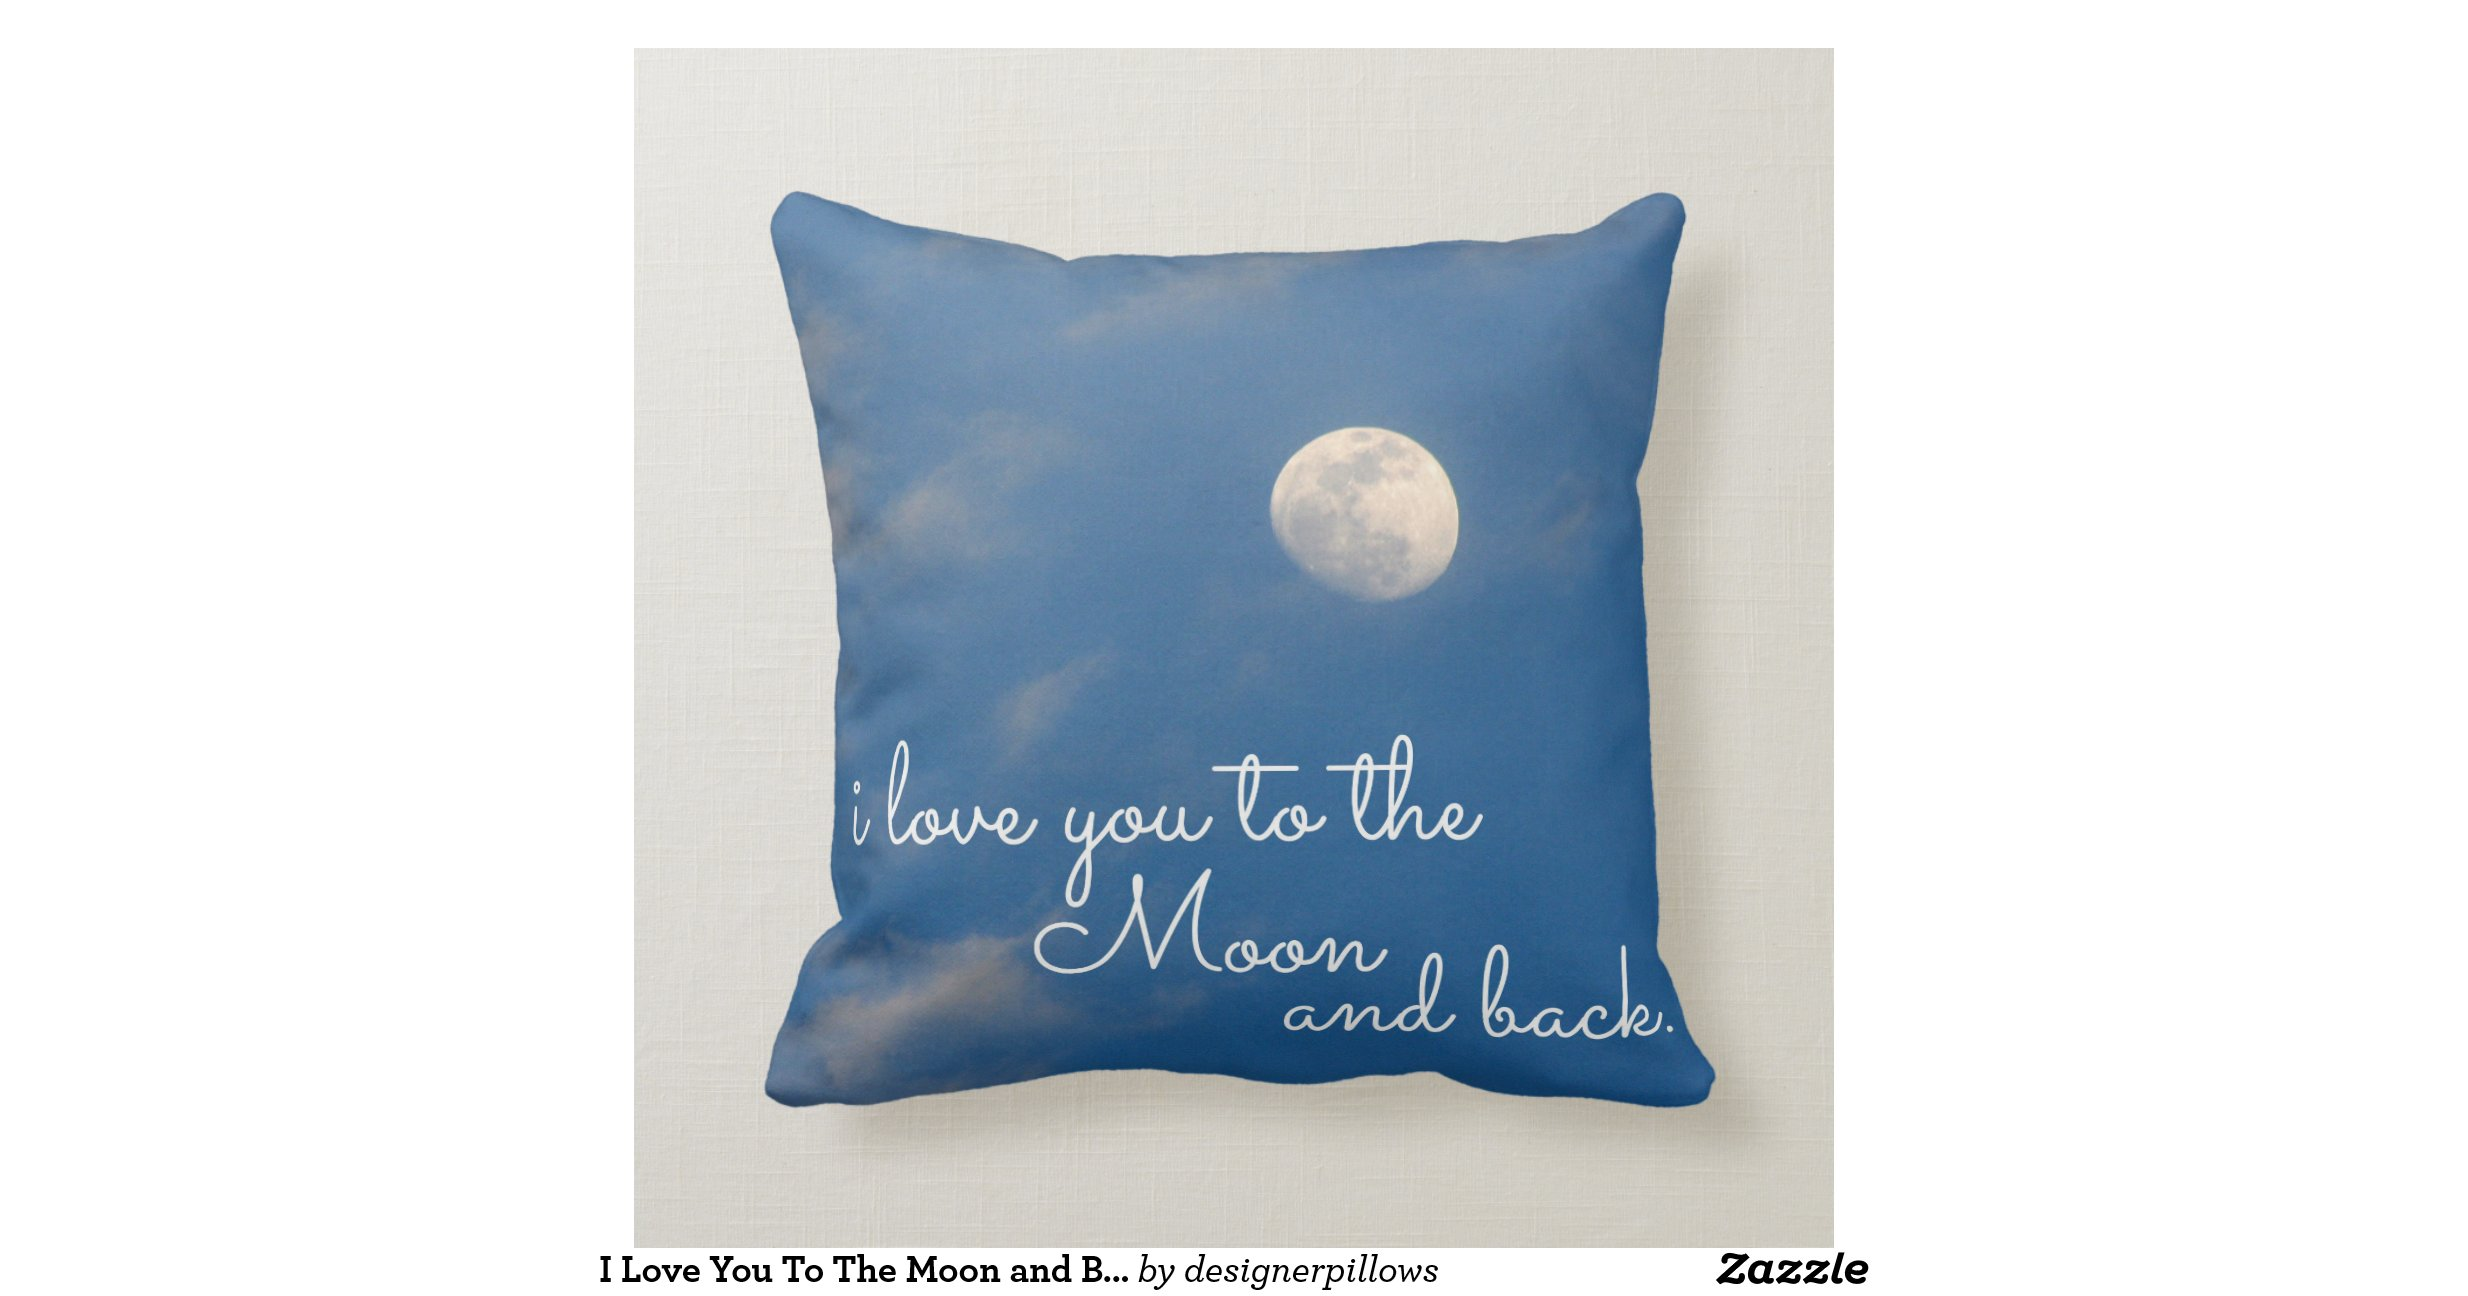 Throw Pillows Tuesday Morning I Love You To The Moon And Back Throw Pillows R7856Fa0C16C64F1E8178F35Dd771Ae12 I5Fqz 8Byvr 1200